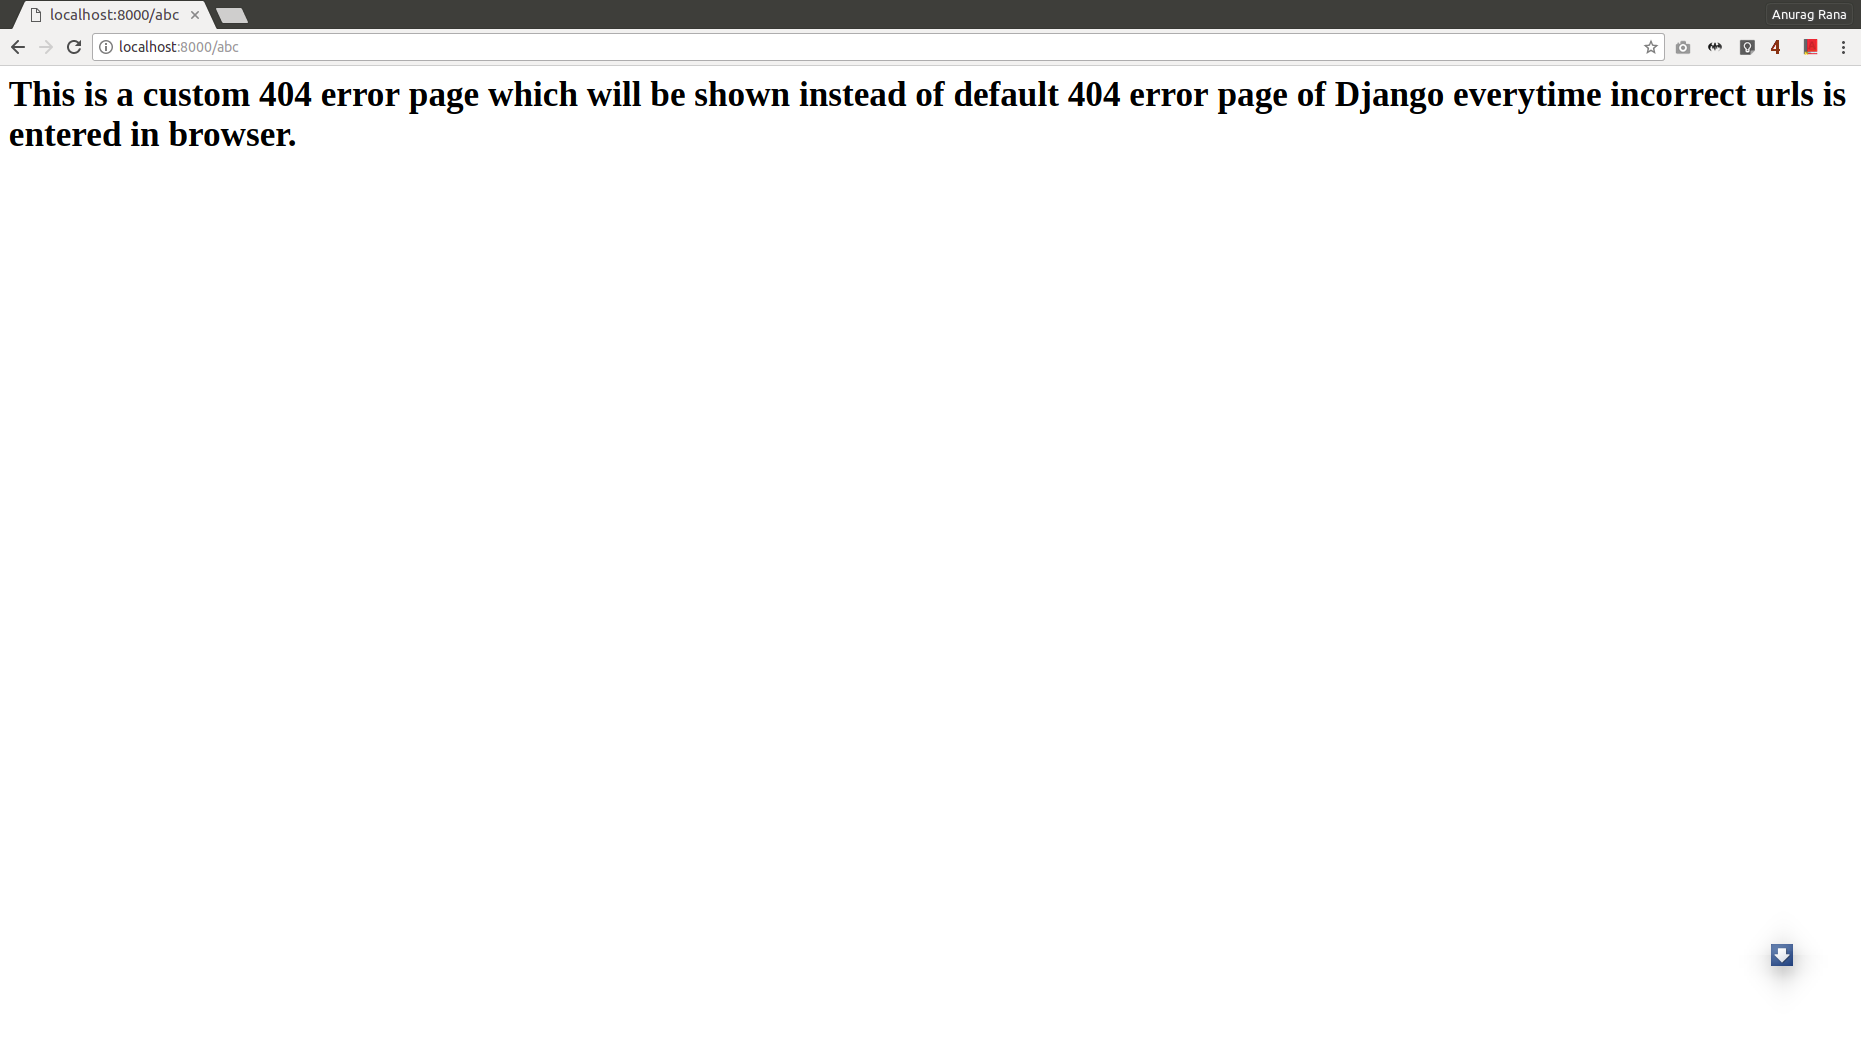 Displaying custom 404 error (page not found) page in Django